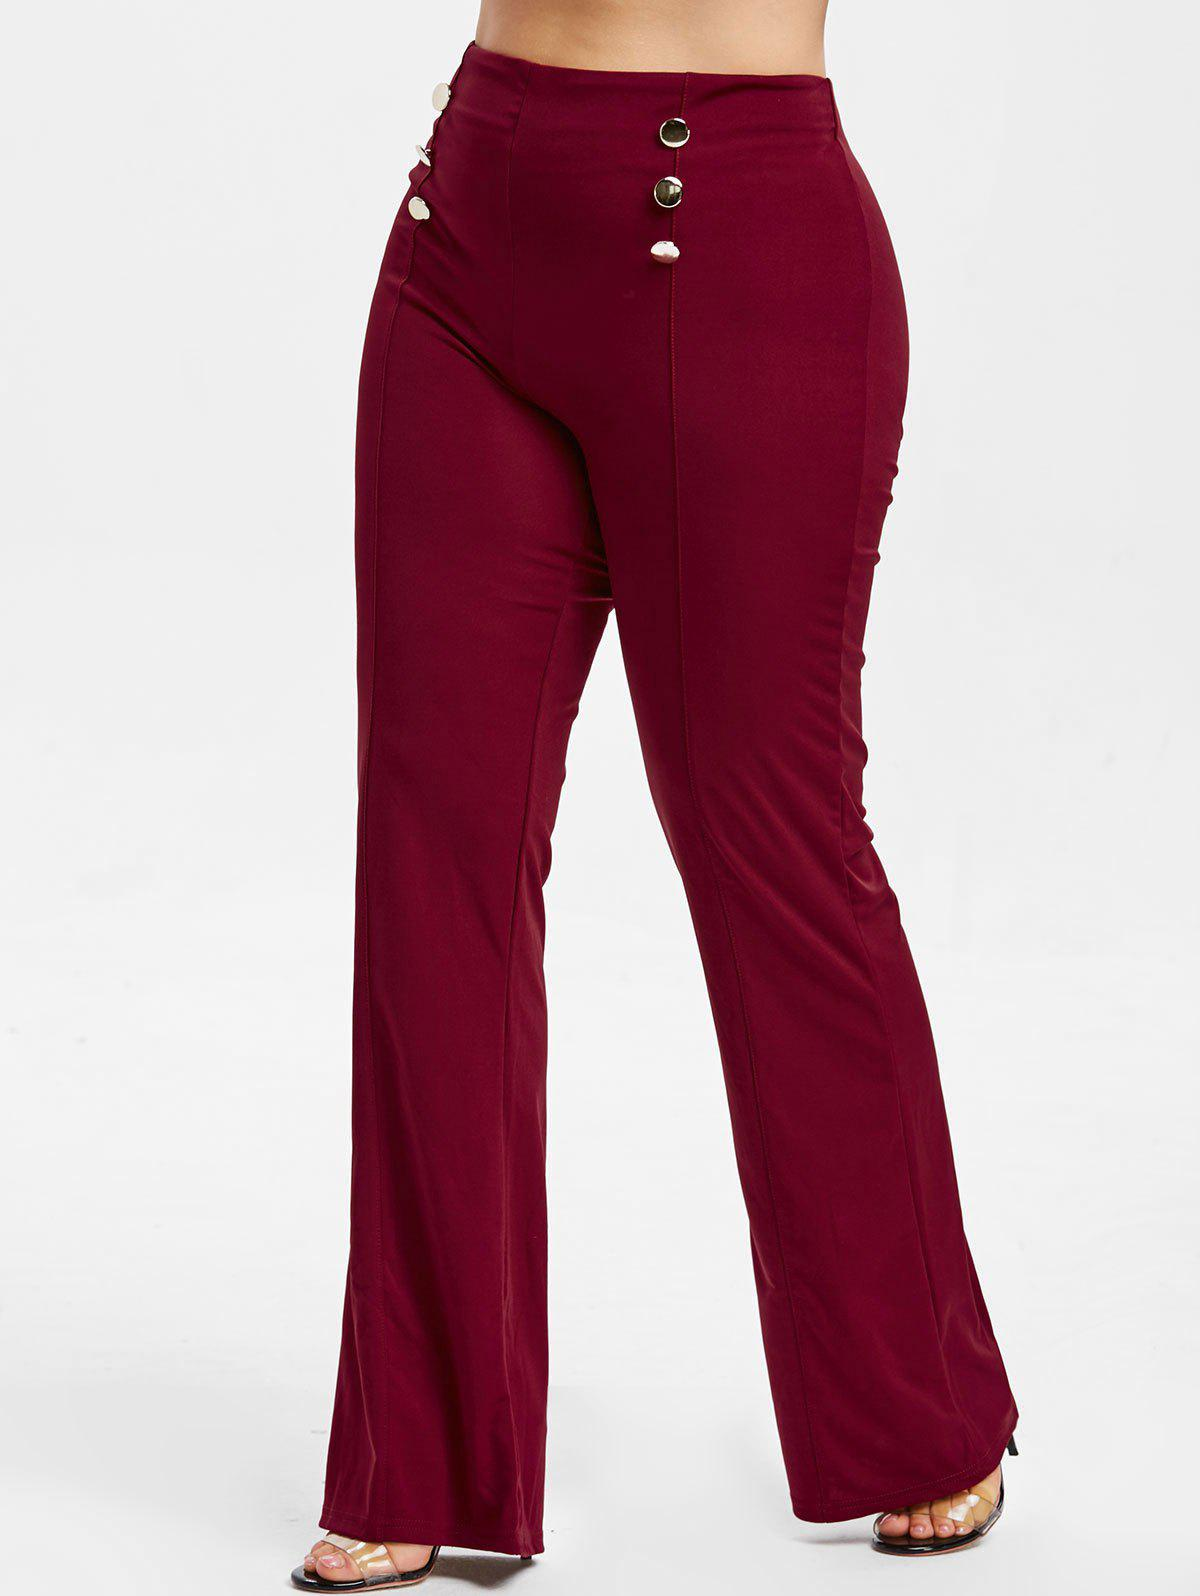 Buy Button Embellished Plus Size Bootcut Pants